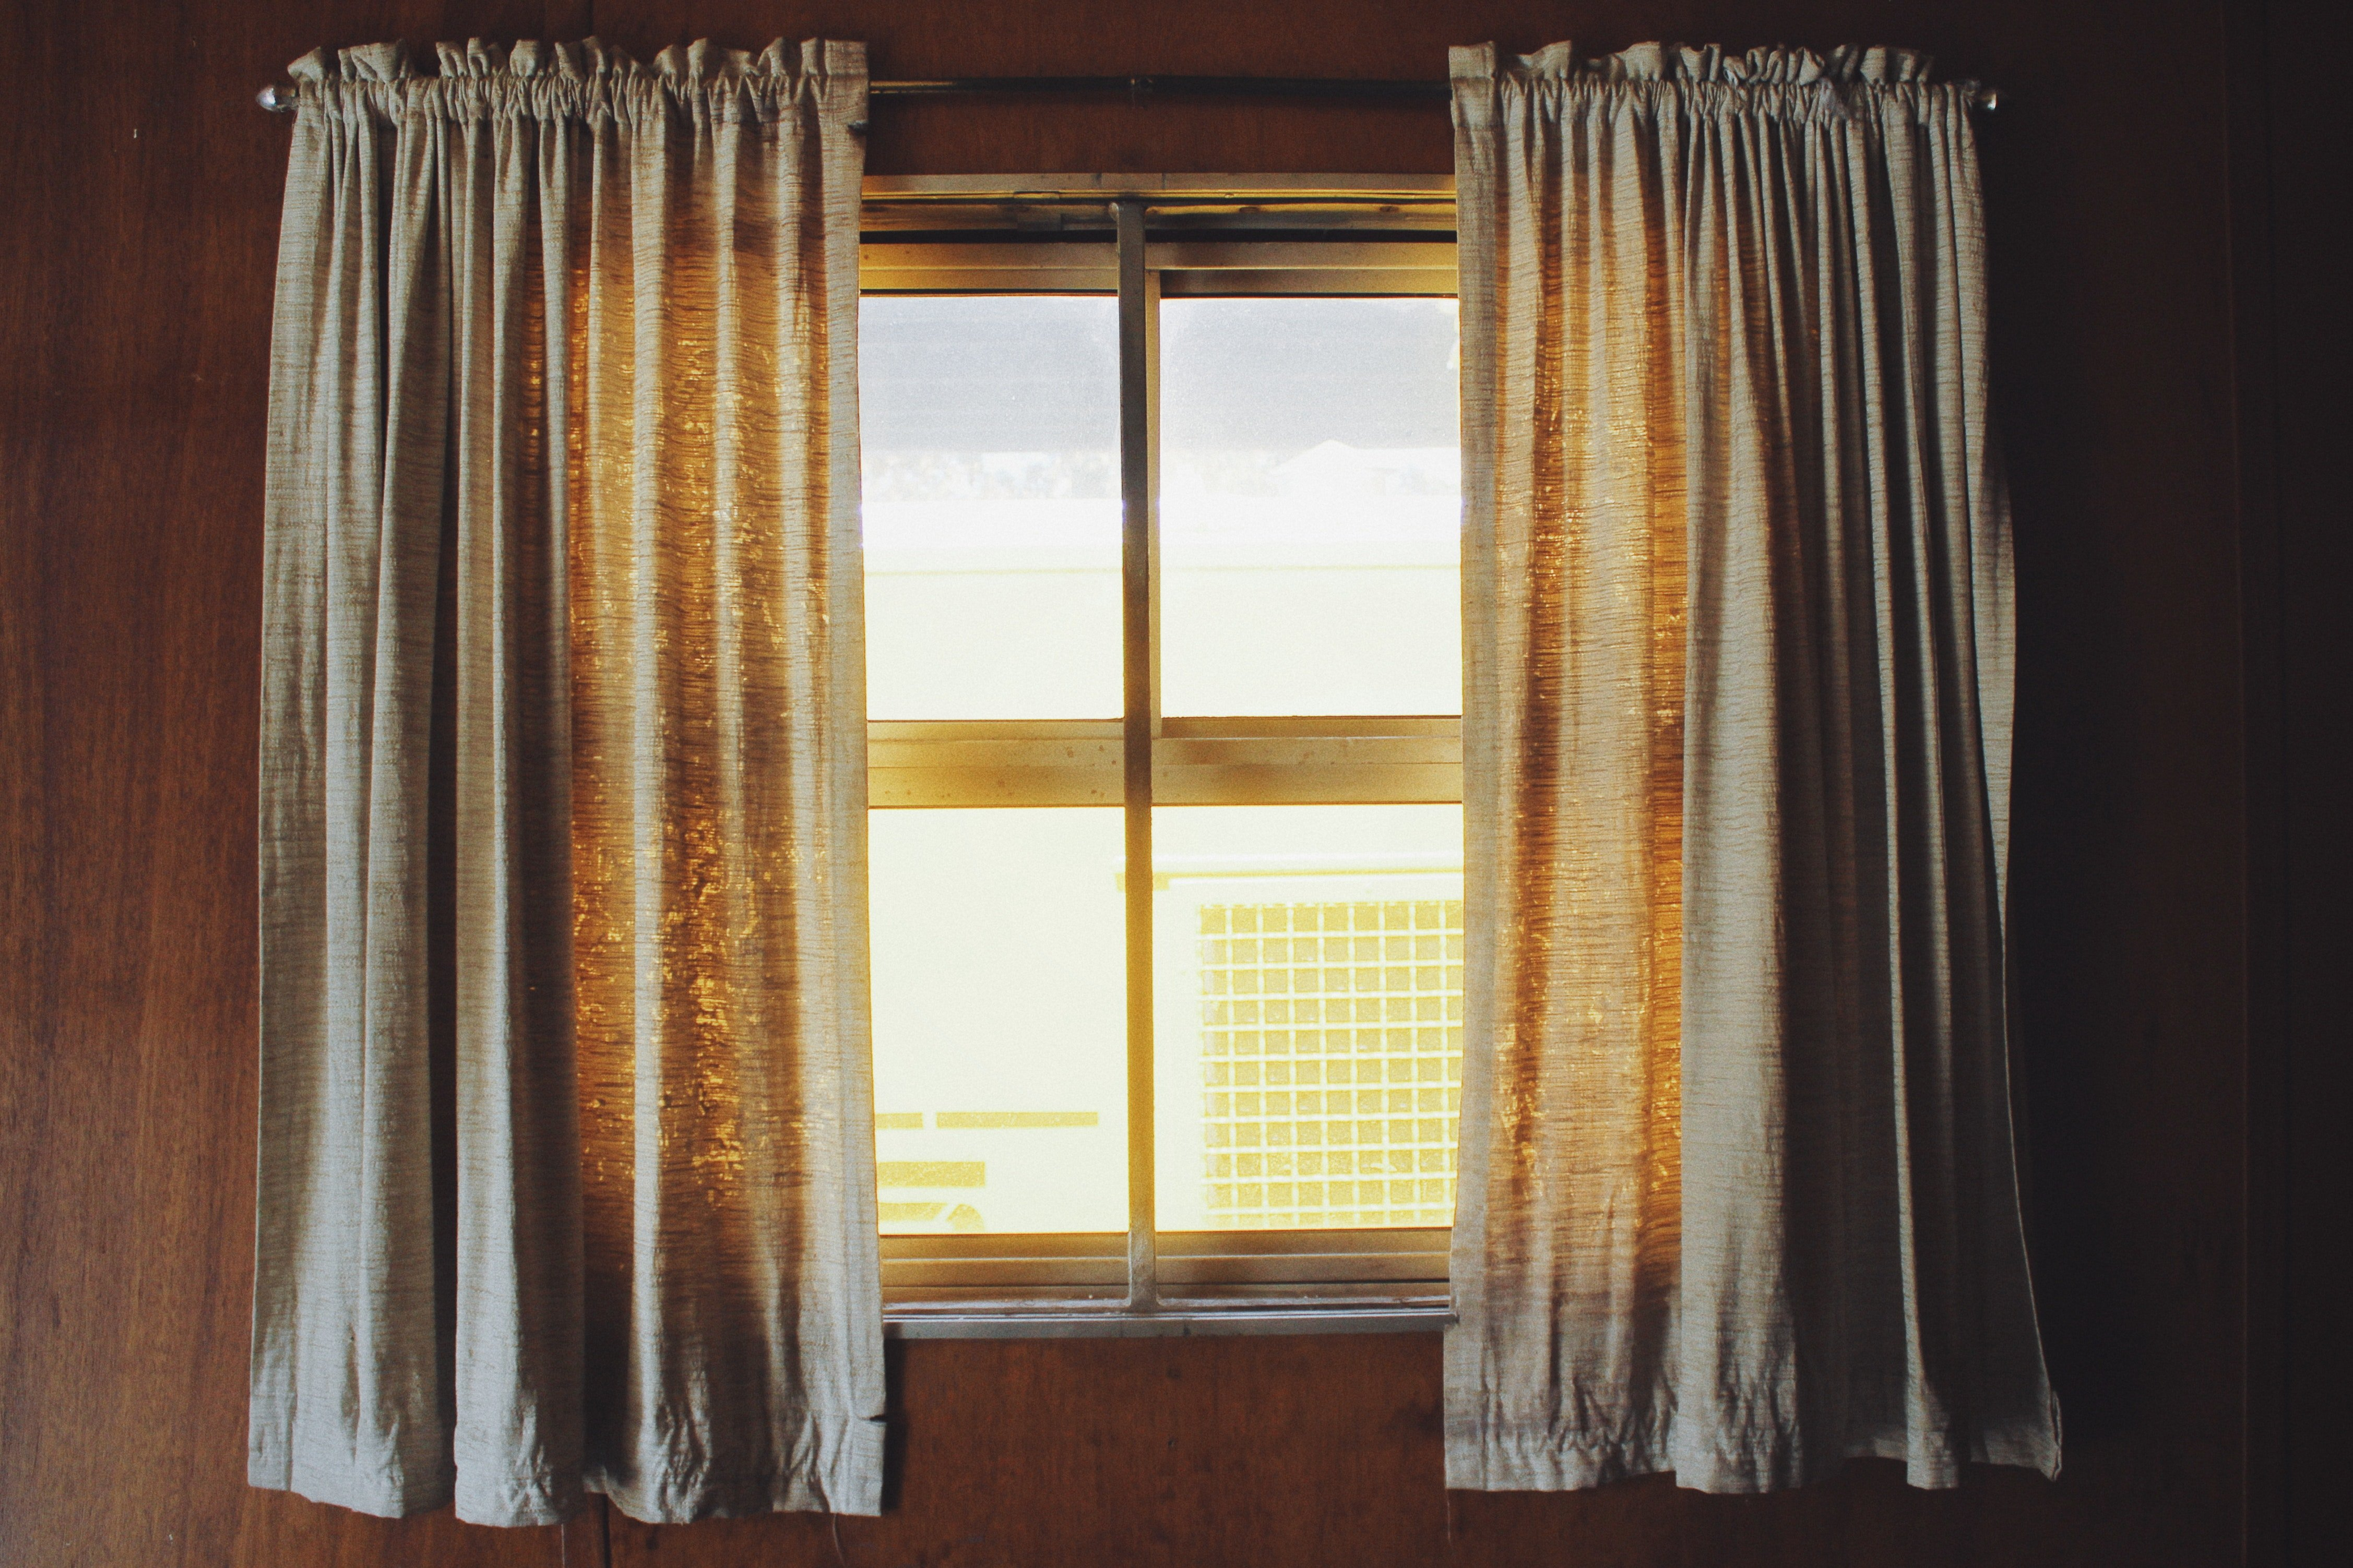 Using thick curtains will help you through the year